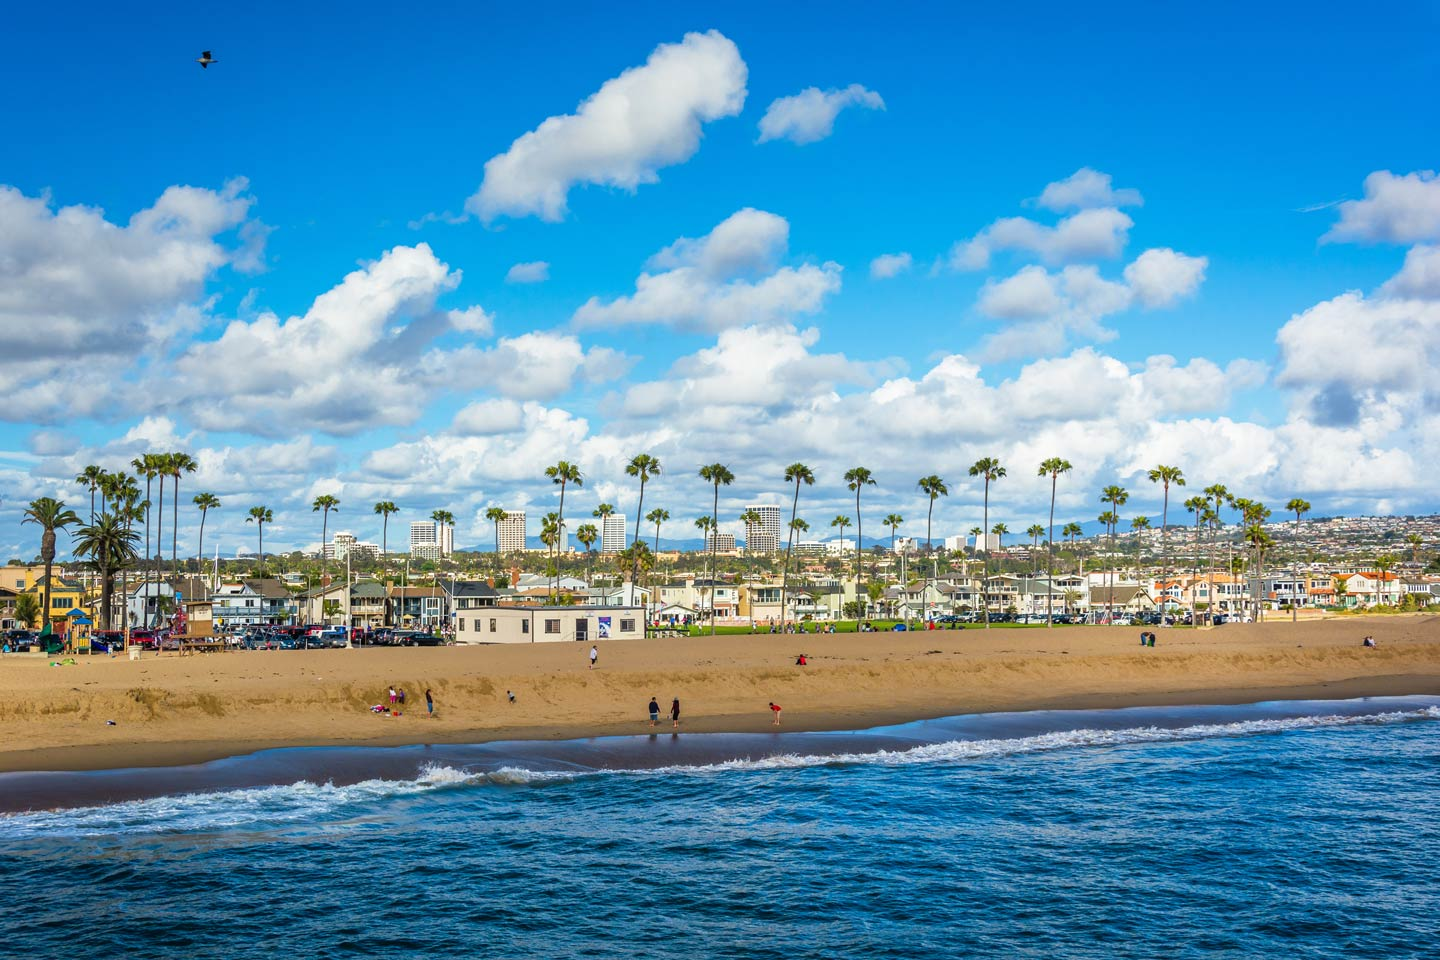 A view of the seaside homes along the Newport Beach's shore as seen from the Pacific Ocean.